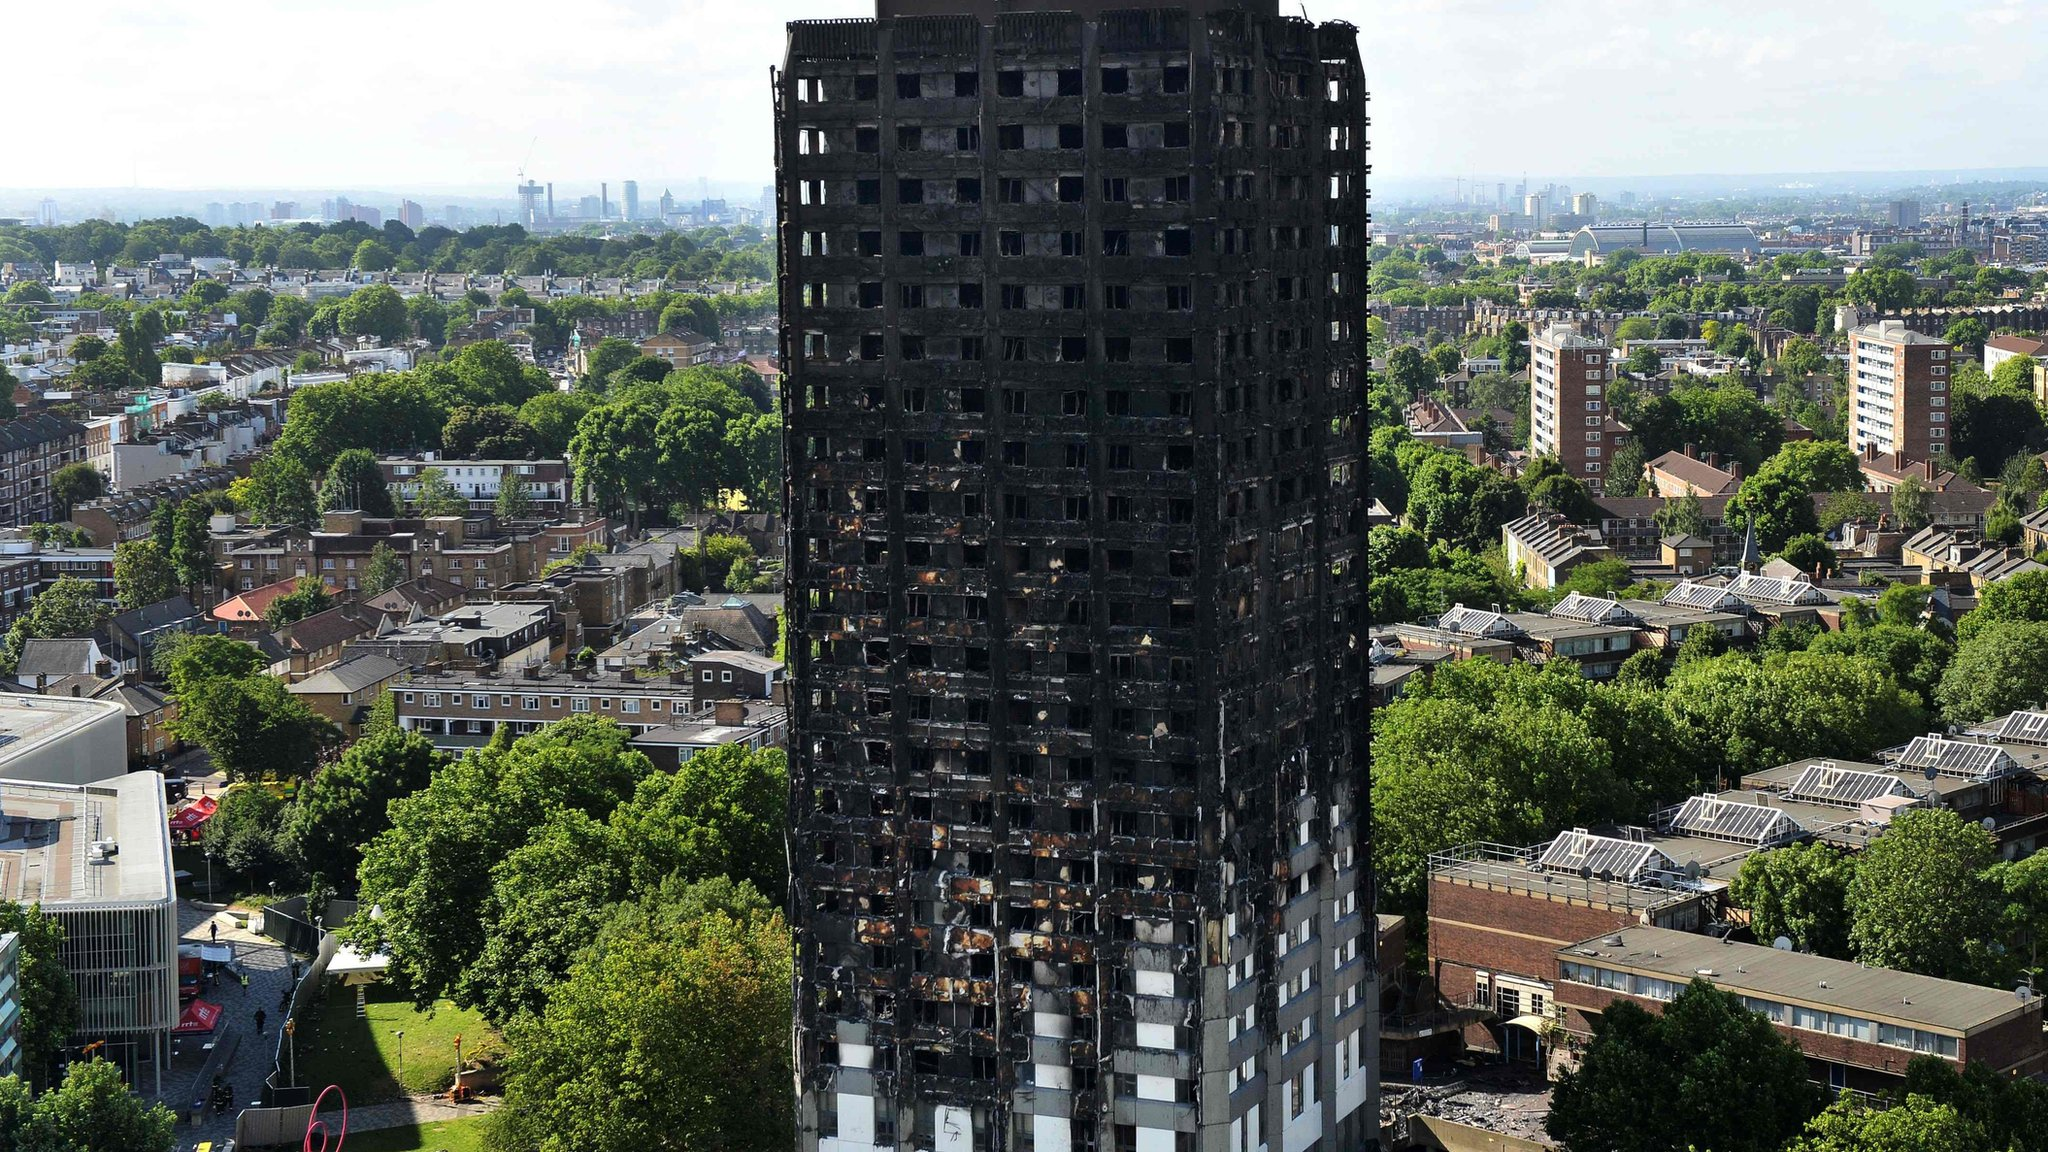 Grenfell inquiry: TV images 'influenced' stay-put policy change